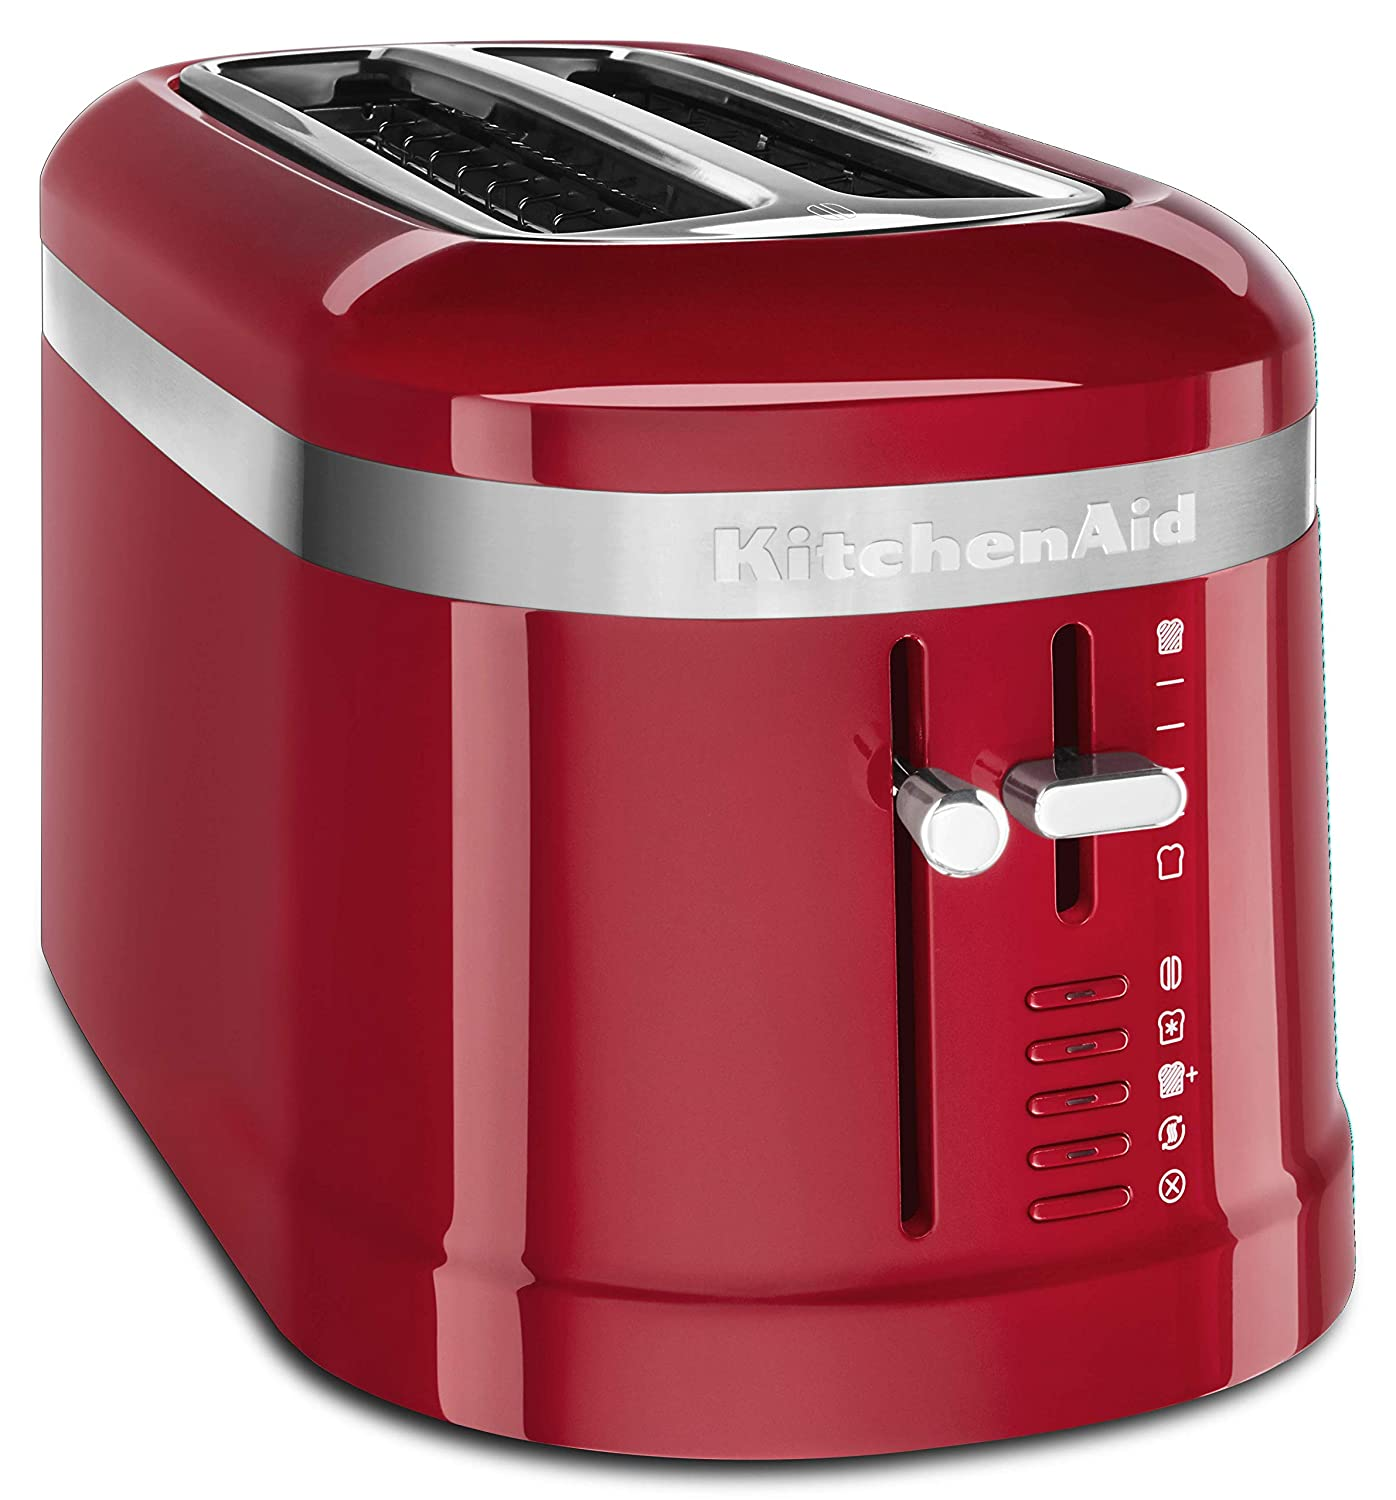 KitchenAid KMT5115ER 4 Slice Long Slot High-Lift Lever Toaster, Empire Red